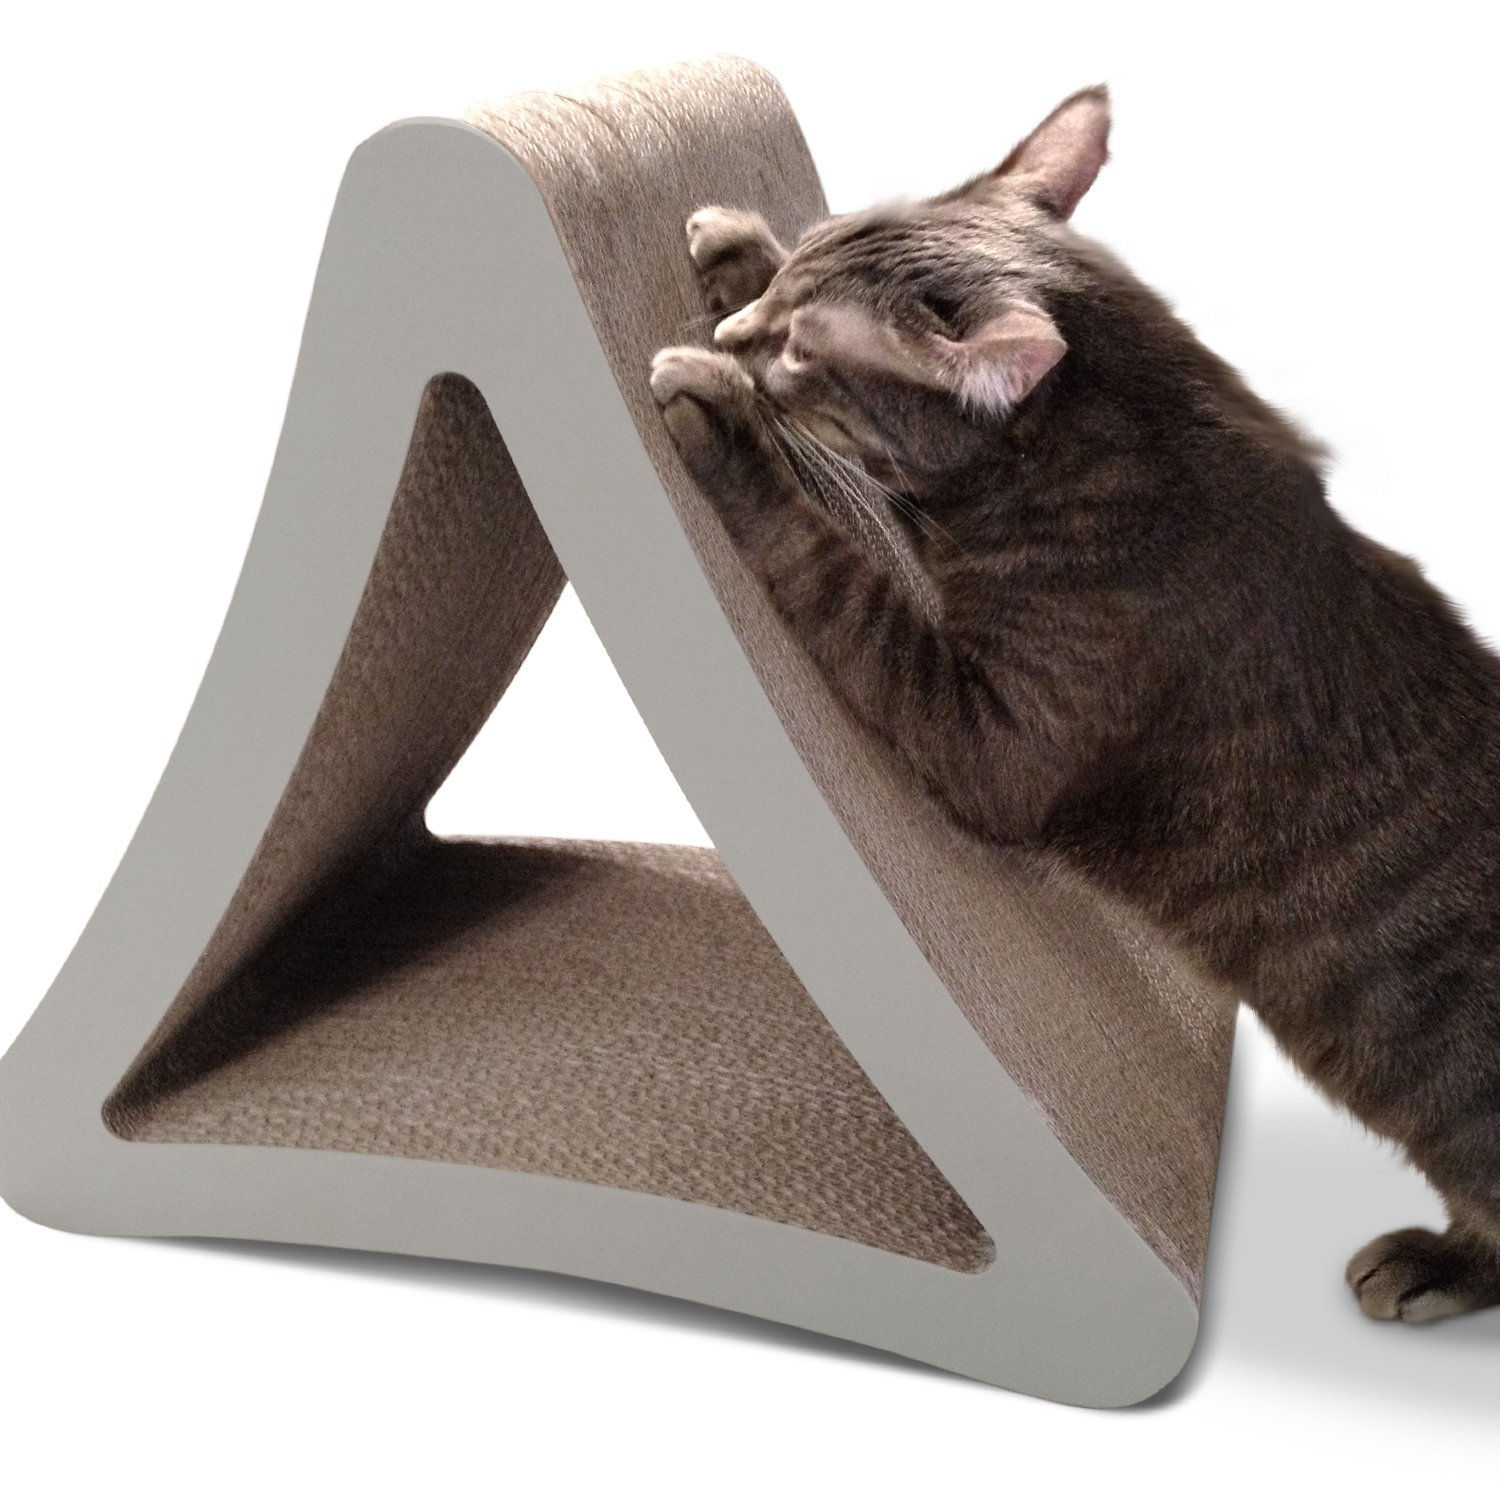 PetFusion 3-Sided Vertical Cat Scratching Post (Standard Size, Warm Gray). [Multiple Scratching Angles to Match Your Cat's Preference] by PetFusion